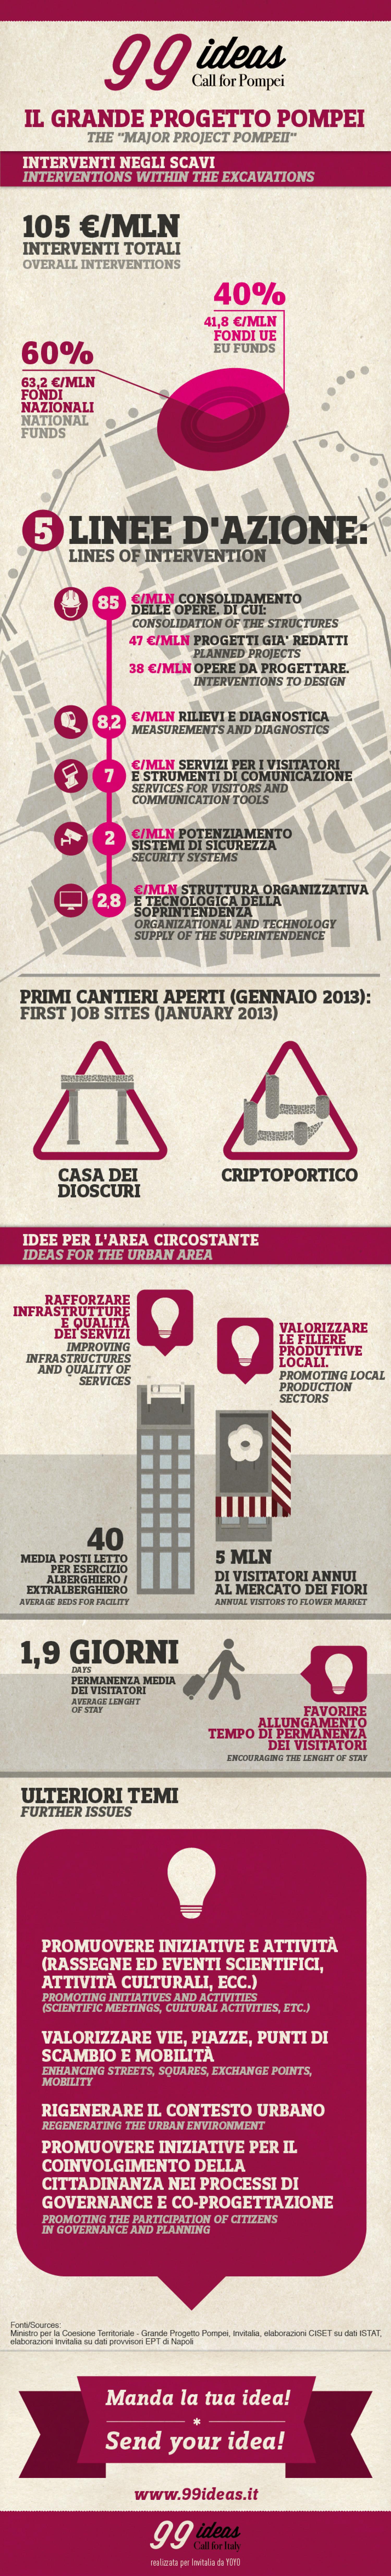 99 Ideas Call for Pompei Infographic